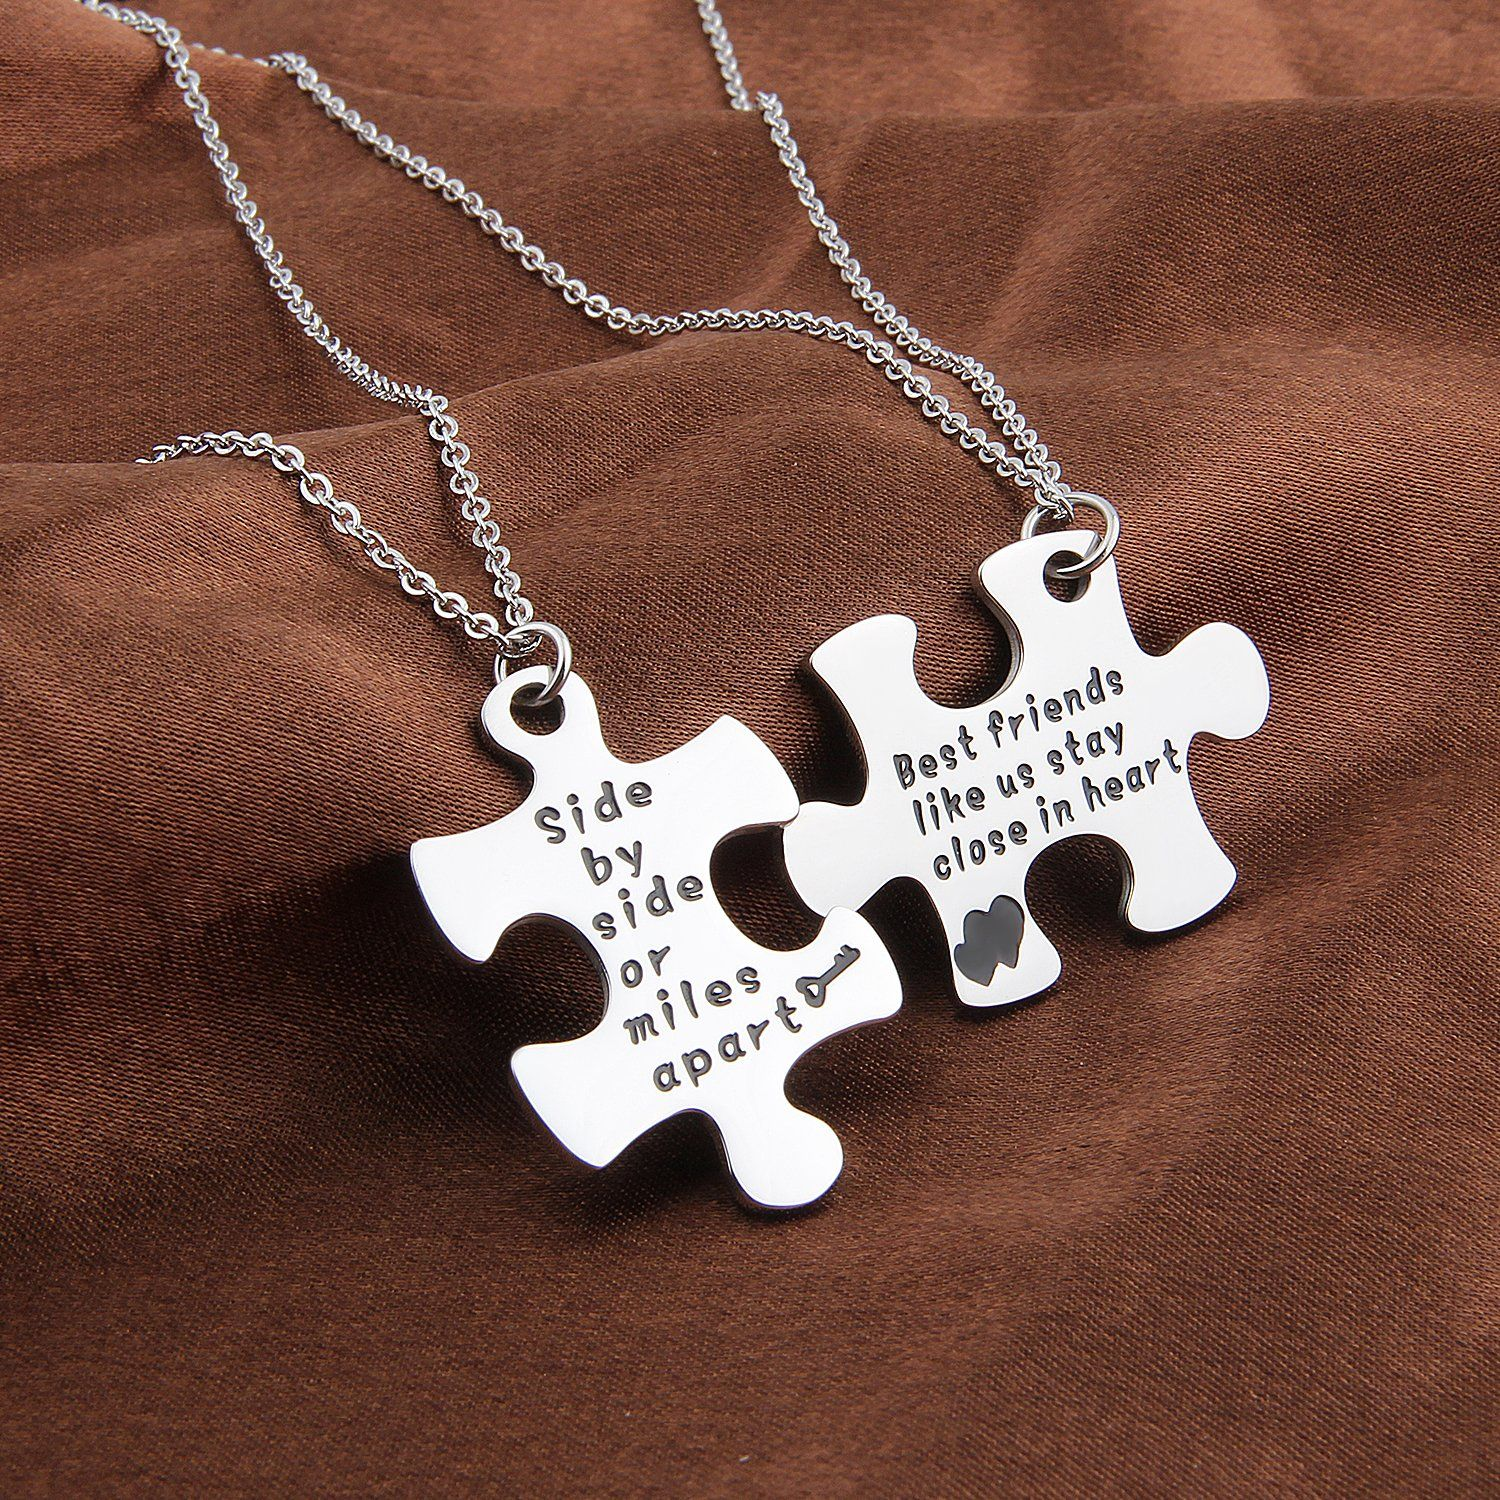 Maofaed Couples Puzzle Keychain Side By Side Or Miles Apart Puzzle